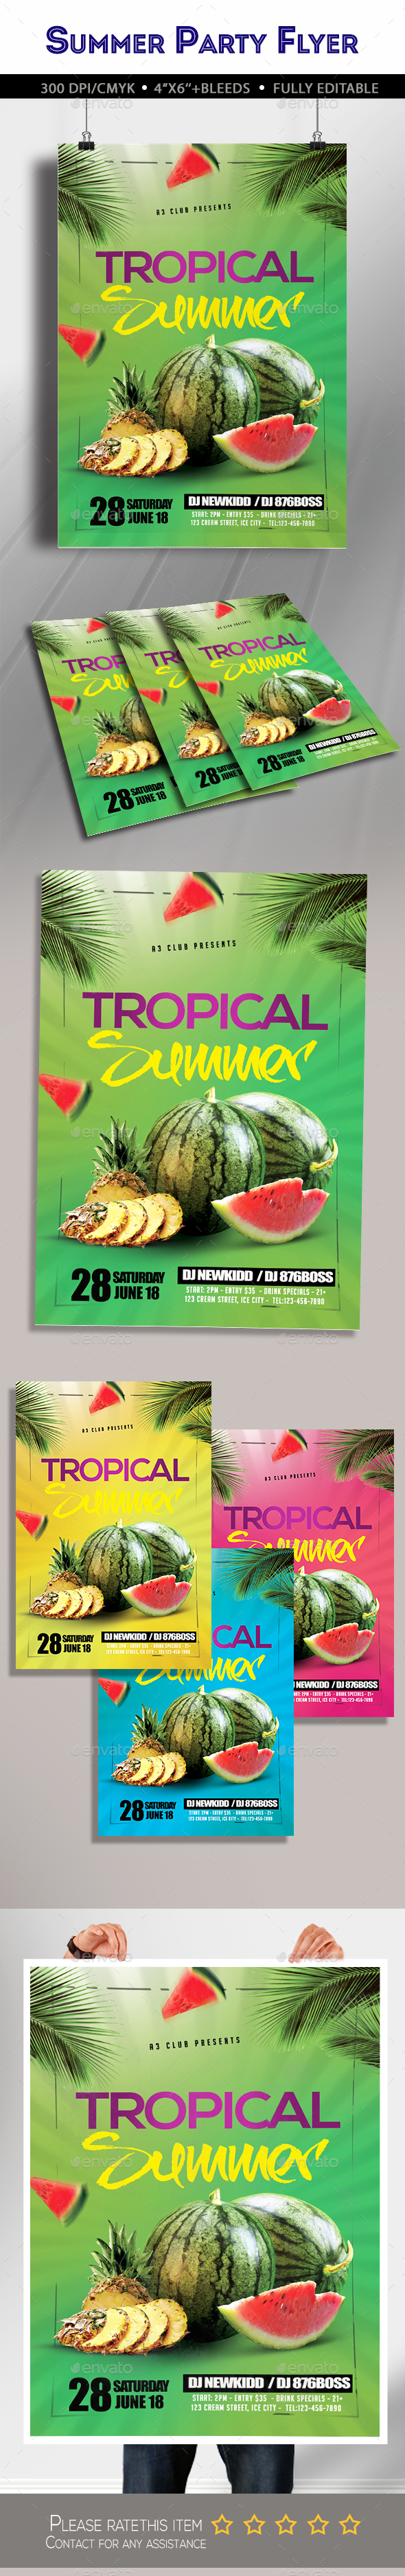 Tropical Summer Party Flyer